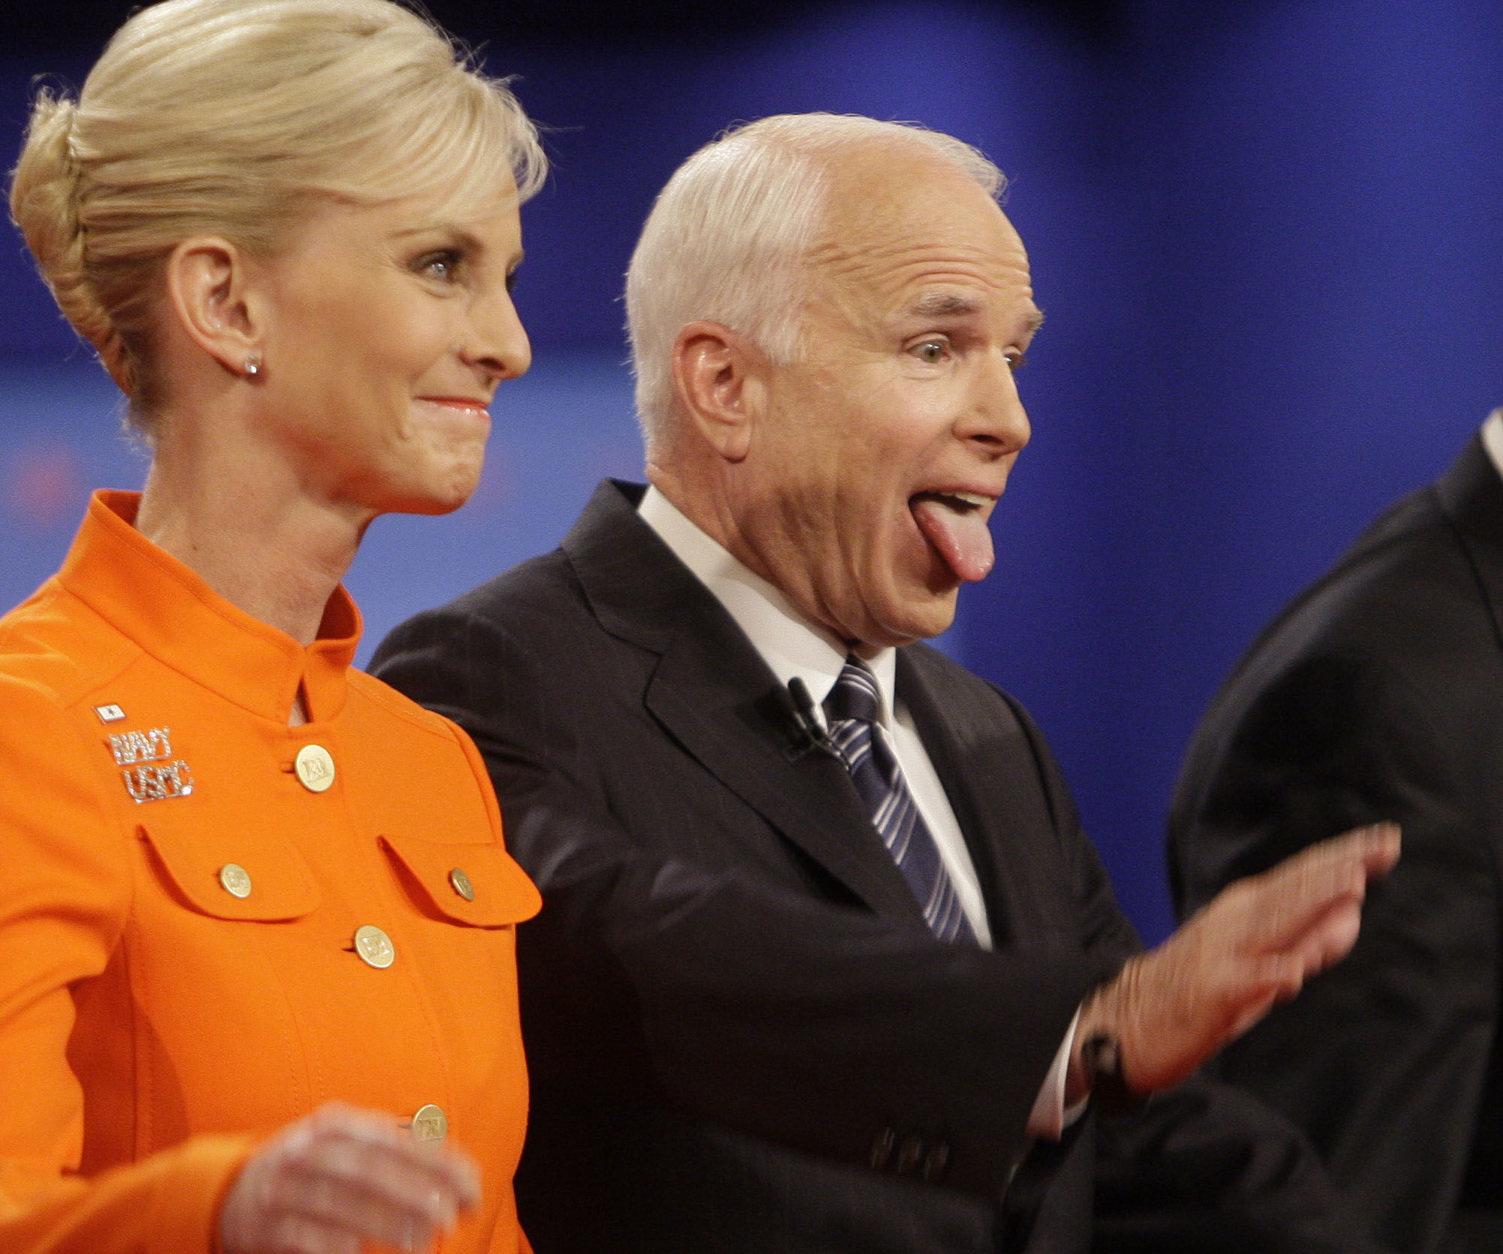 Republican presidential candidate Sen. John McCain, R-Ariz., right, joined by wife Cindy McCain, reacts to the crowd following his presidential debate against Democratic presidential candidate Sen. Barack Obama, D-Ill., at Hofstra University in Hempstead, N.Y., Wednesday, Oct. 15, 2008. (AP Photo/Seth Wenig)